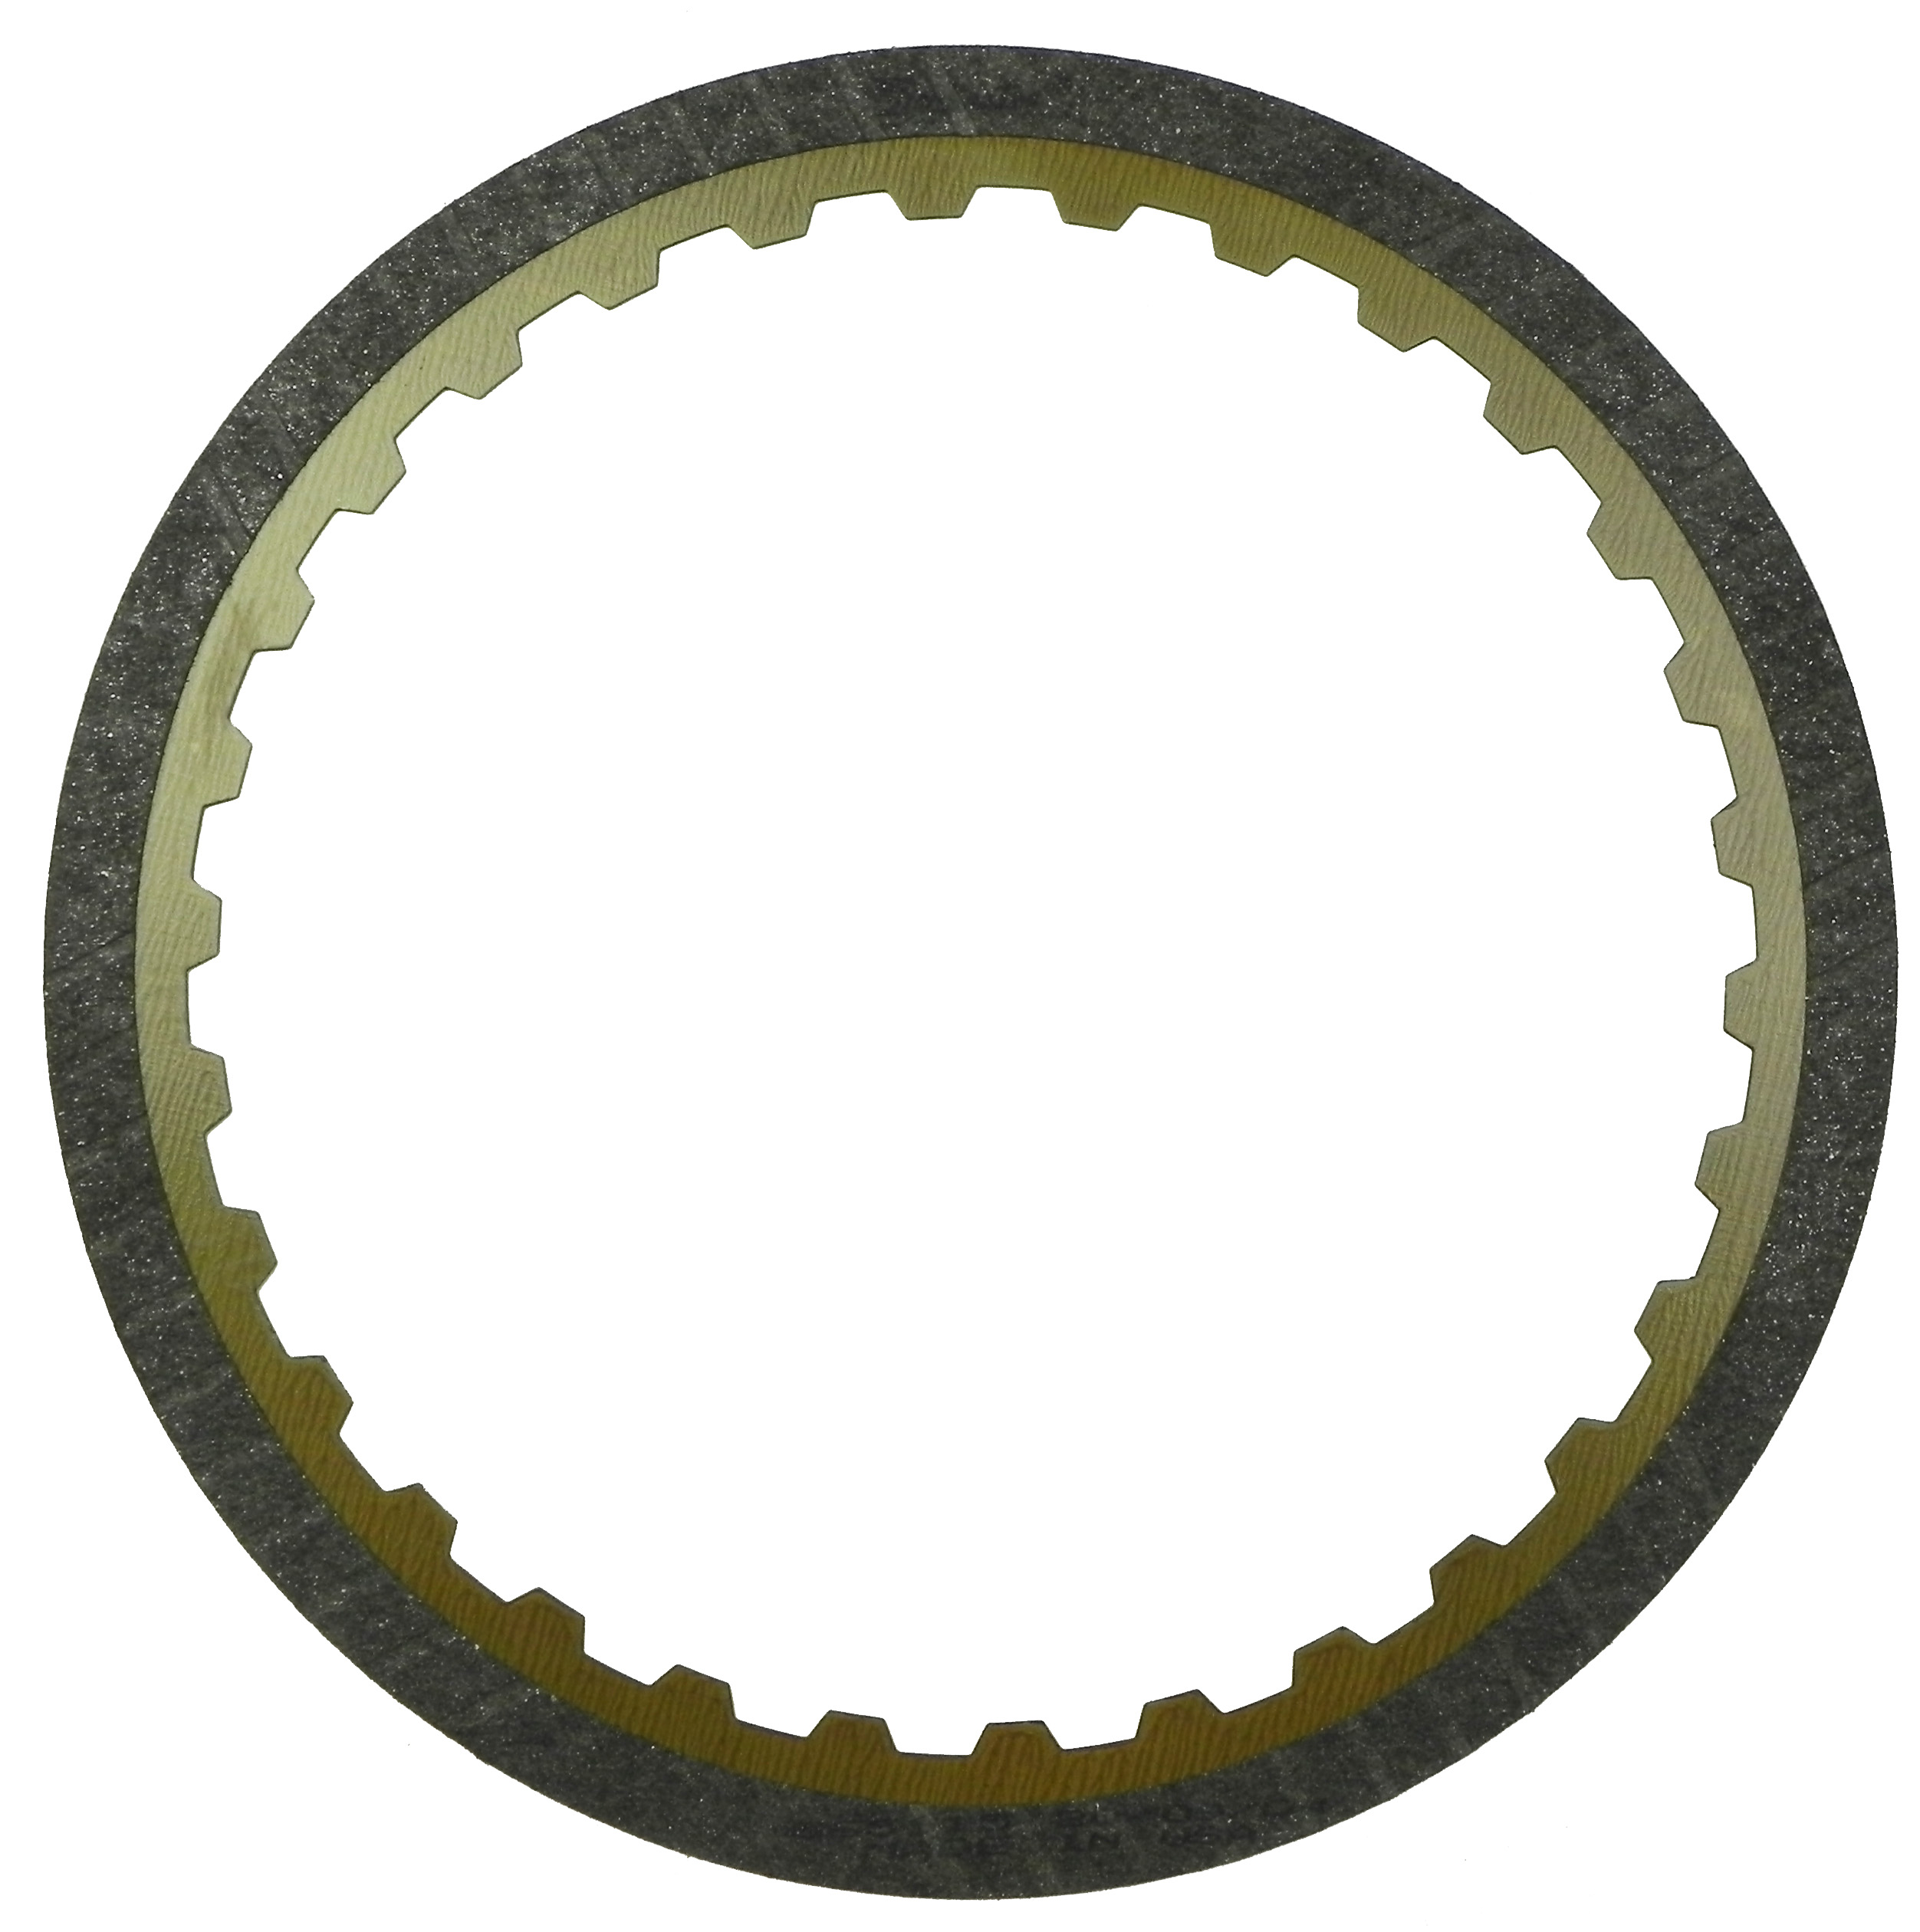 R565115 | 1997-2009 Friction Clutch Plate High Energy Low, Reverse High Energy